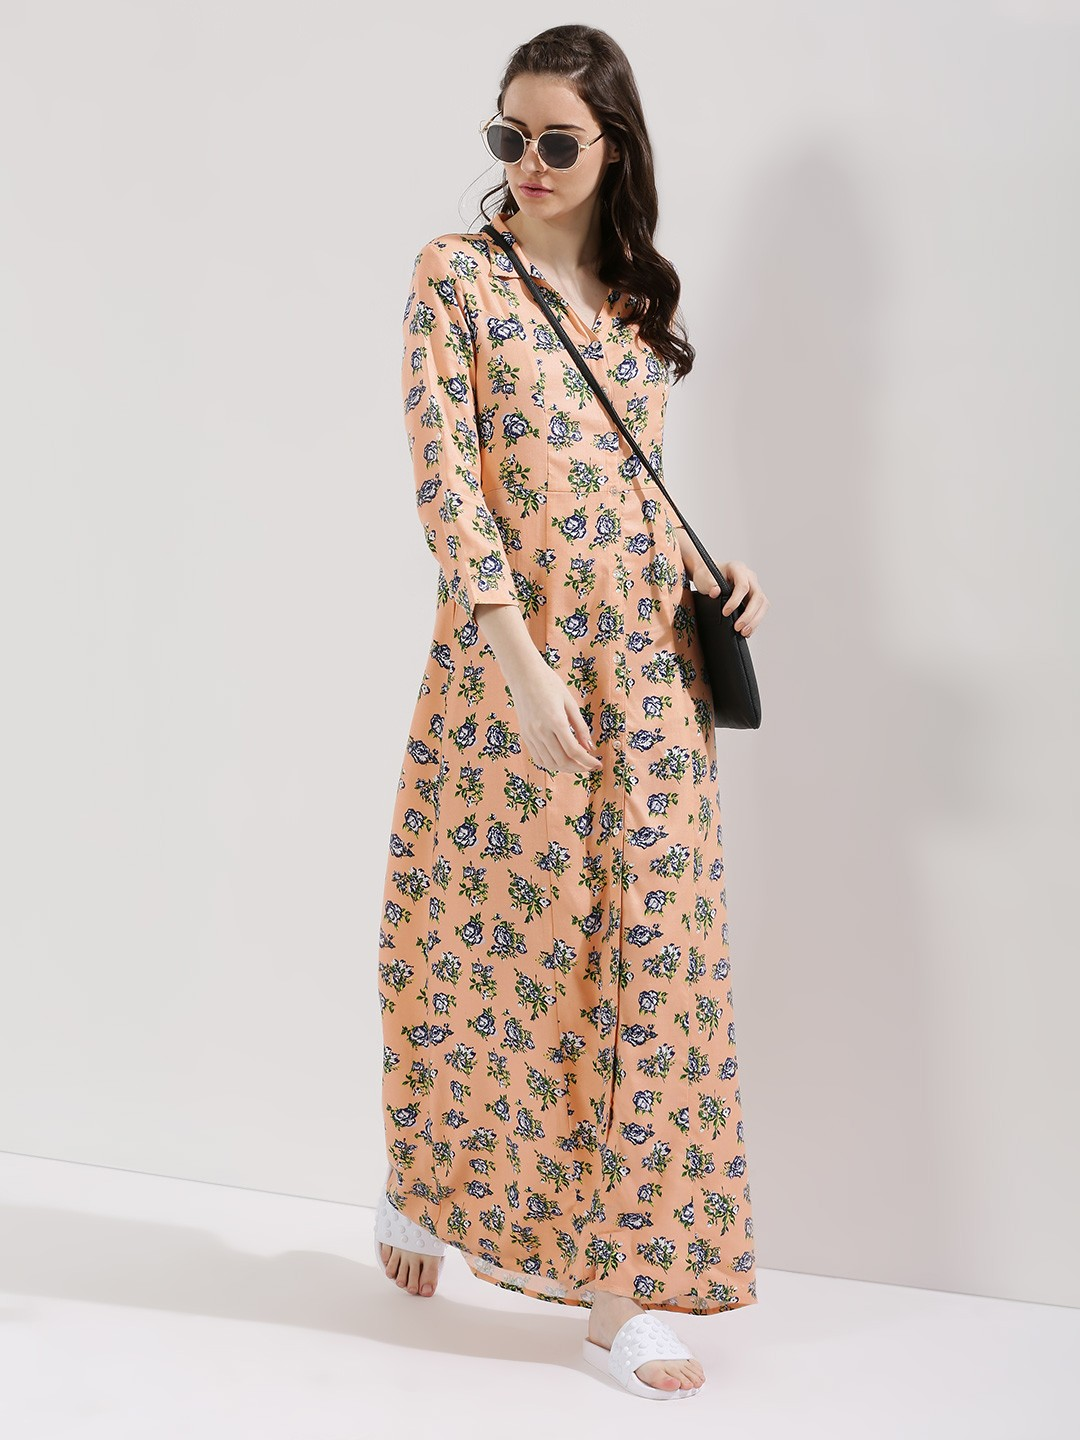 Buy ZIVAME Printed Maxi Dress For Women - Women's Peach Maxi ...